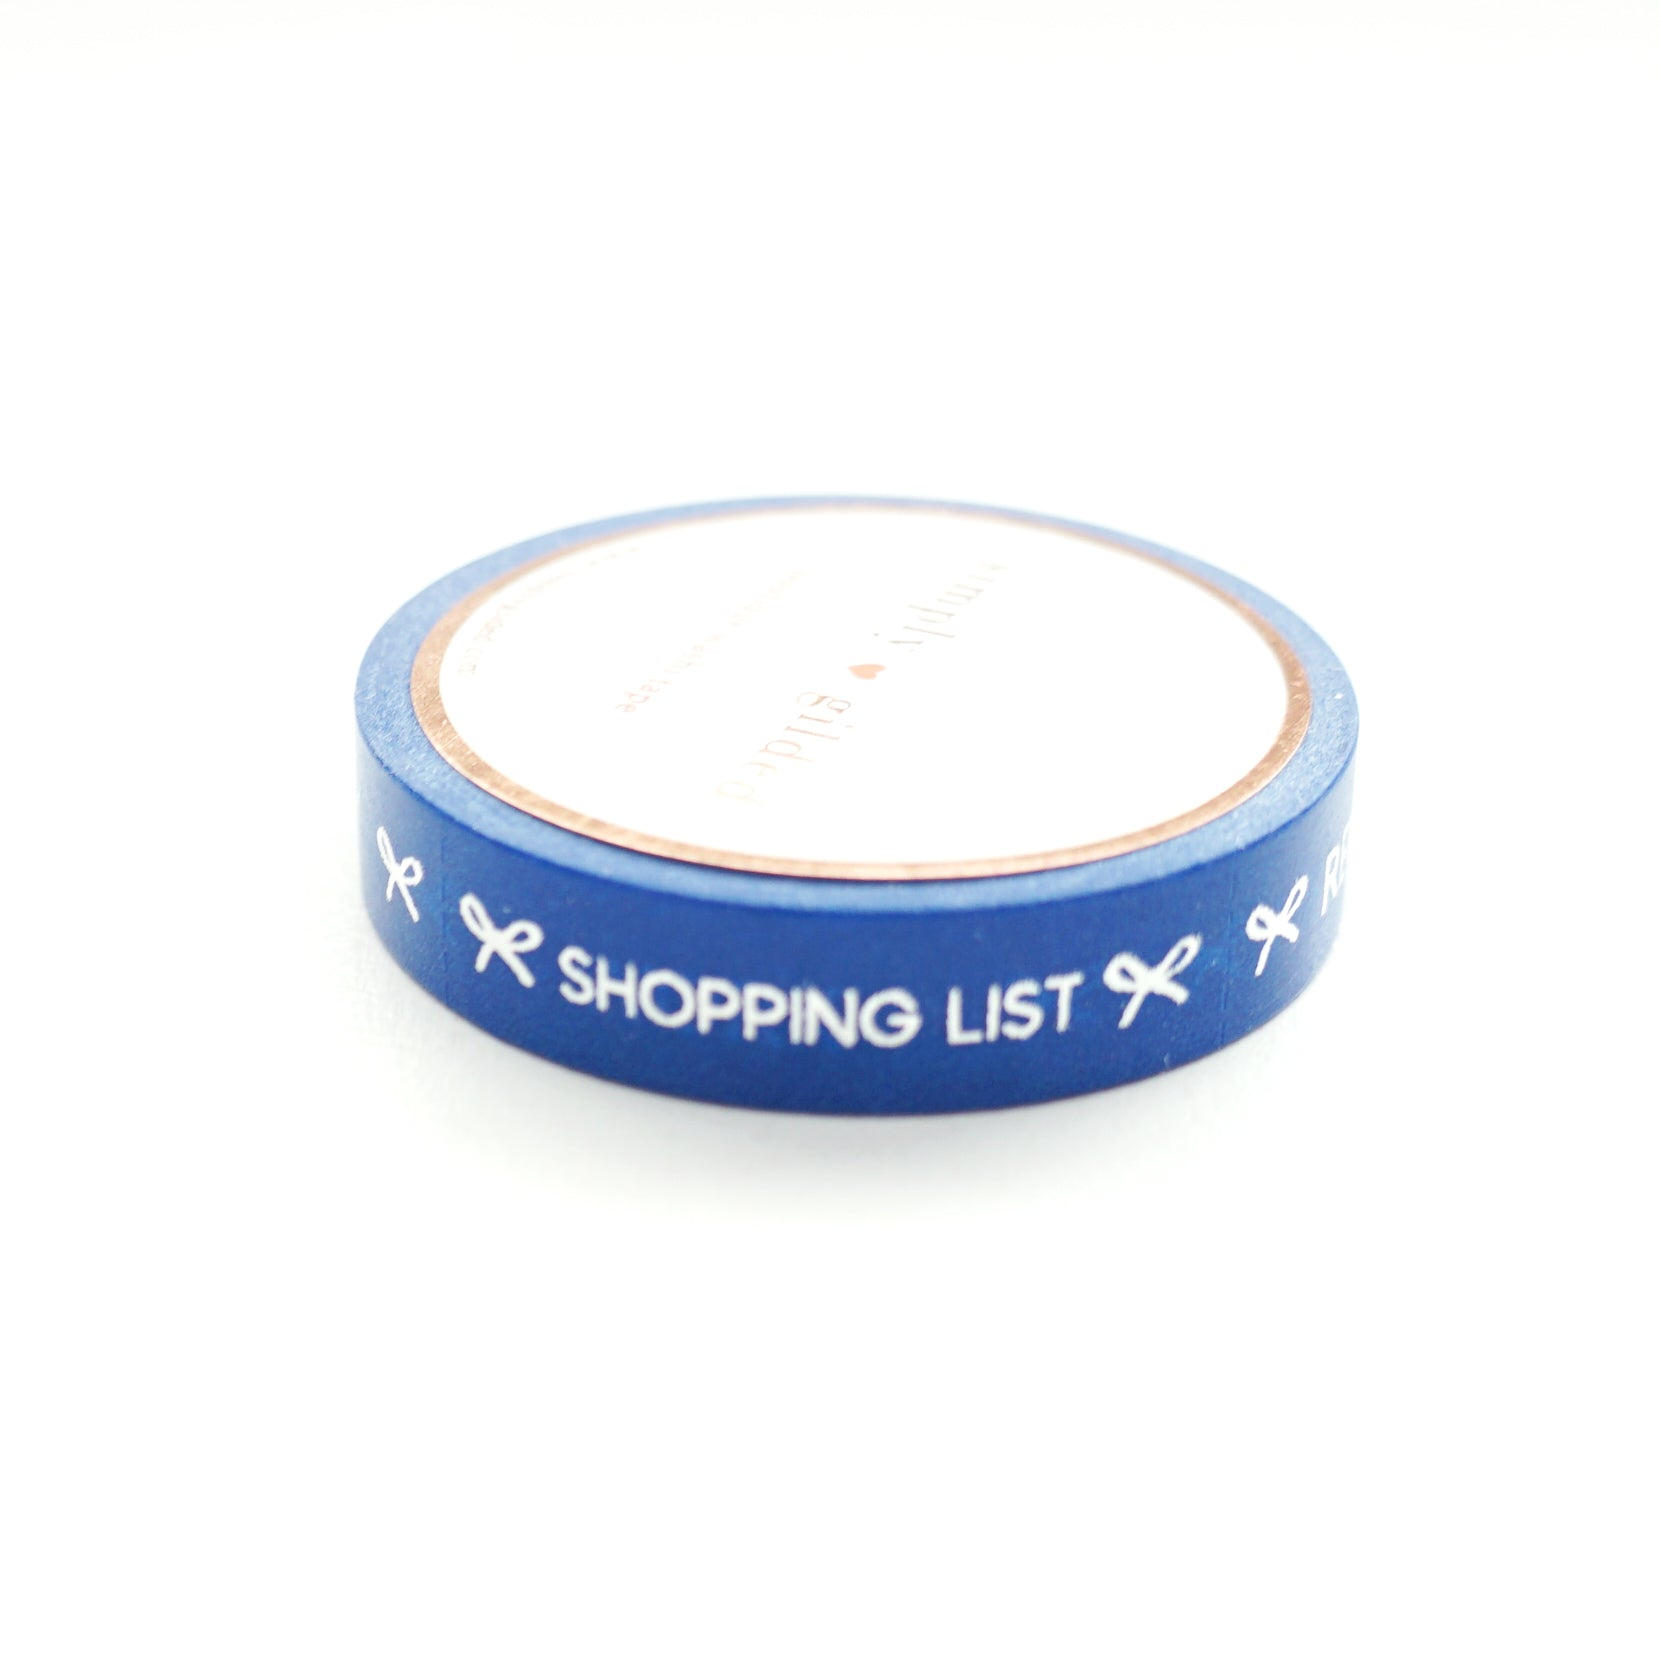 PERFORATED WASHI TAPE 10mm - TASKS True Blue + silver foil text